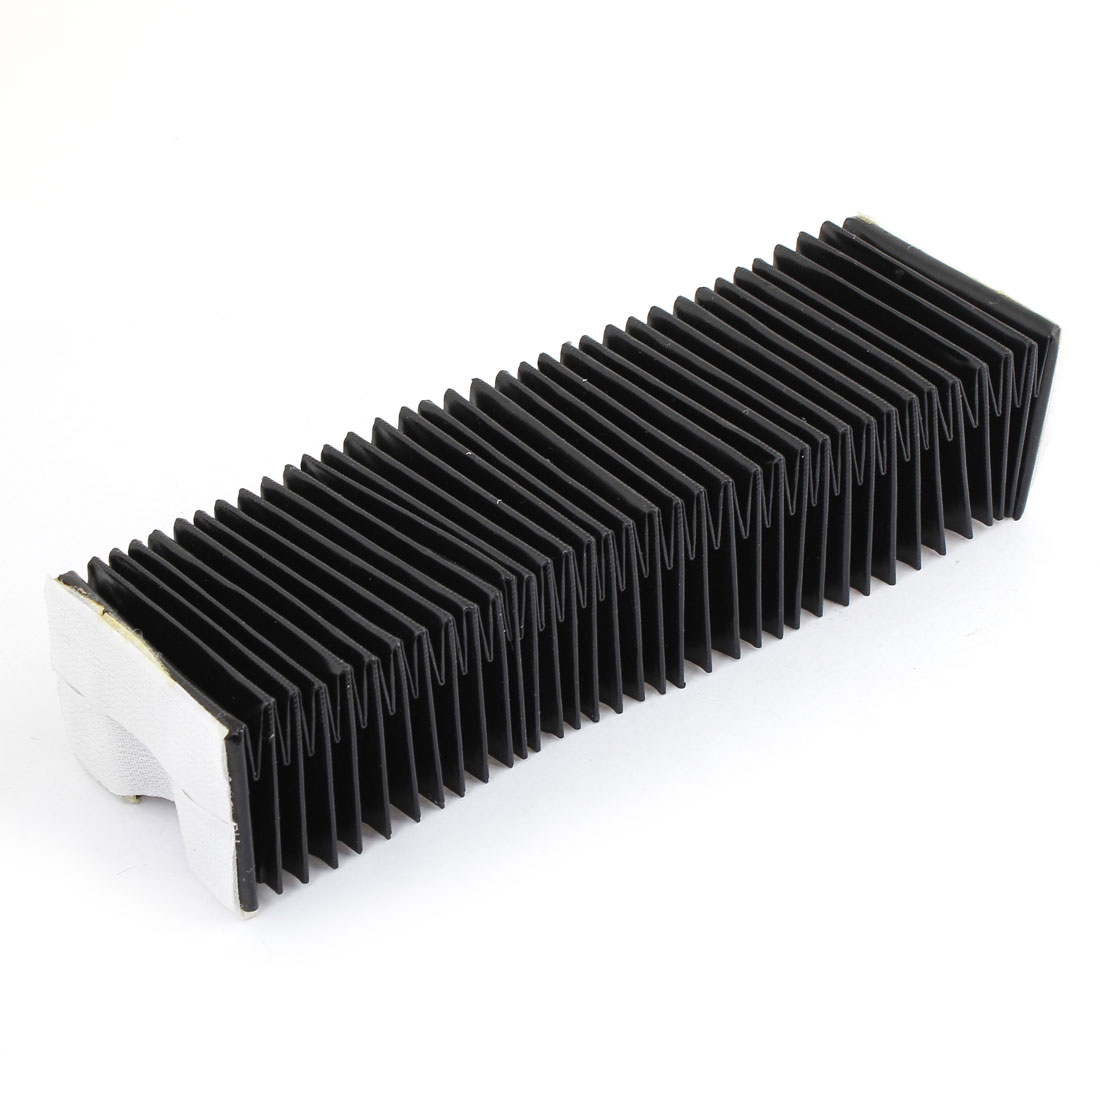 Black Metal Plastic Frame CNC Machinary Parts Dust Cover 100cmx 7cm x 5cm